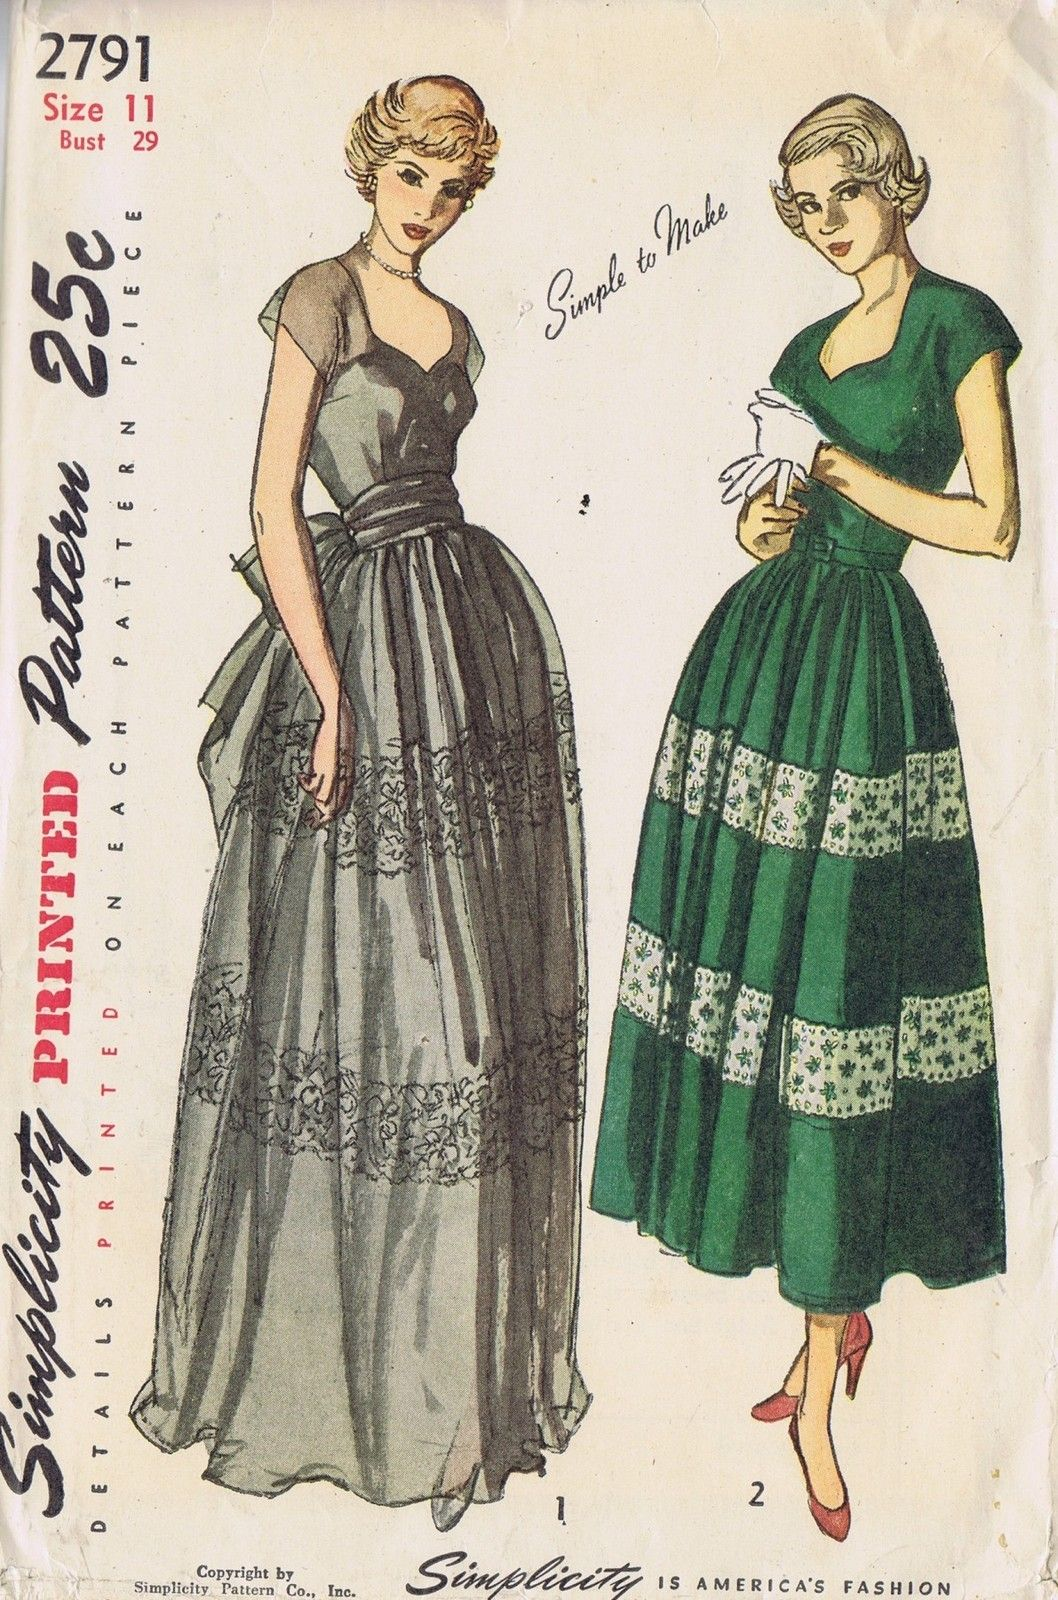 VINTAGE EVENING DRESS 1940s SEWING PATTERN SIMPLICITY 2791 BUST 29 ...